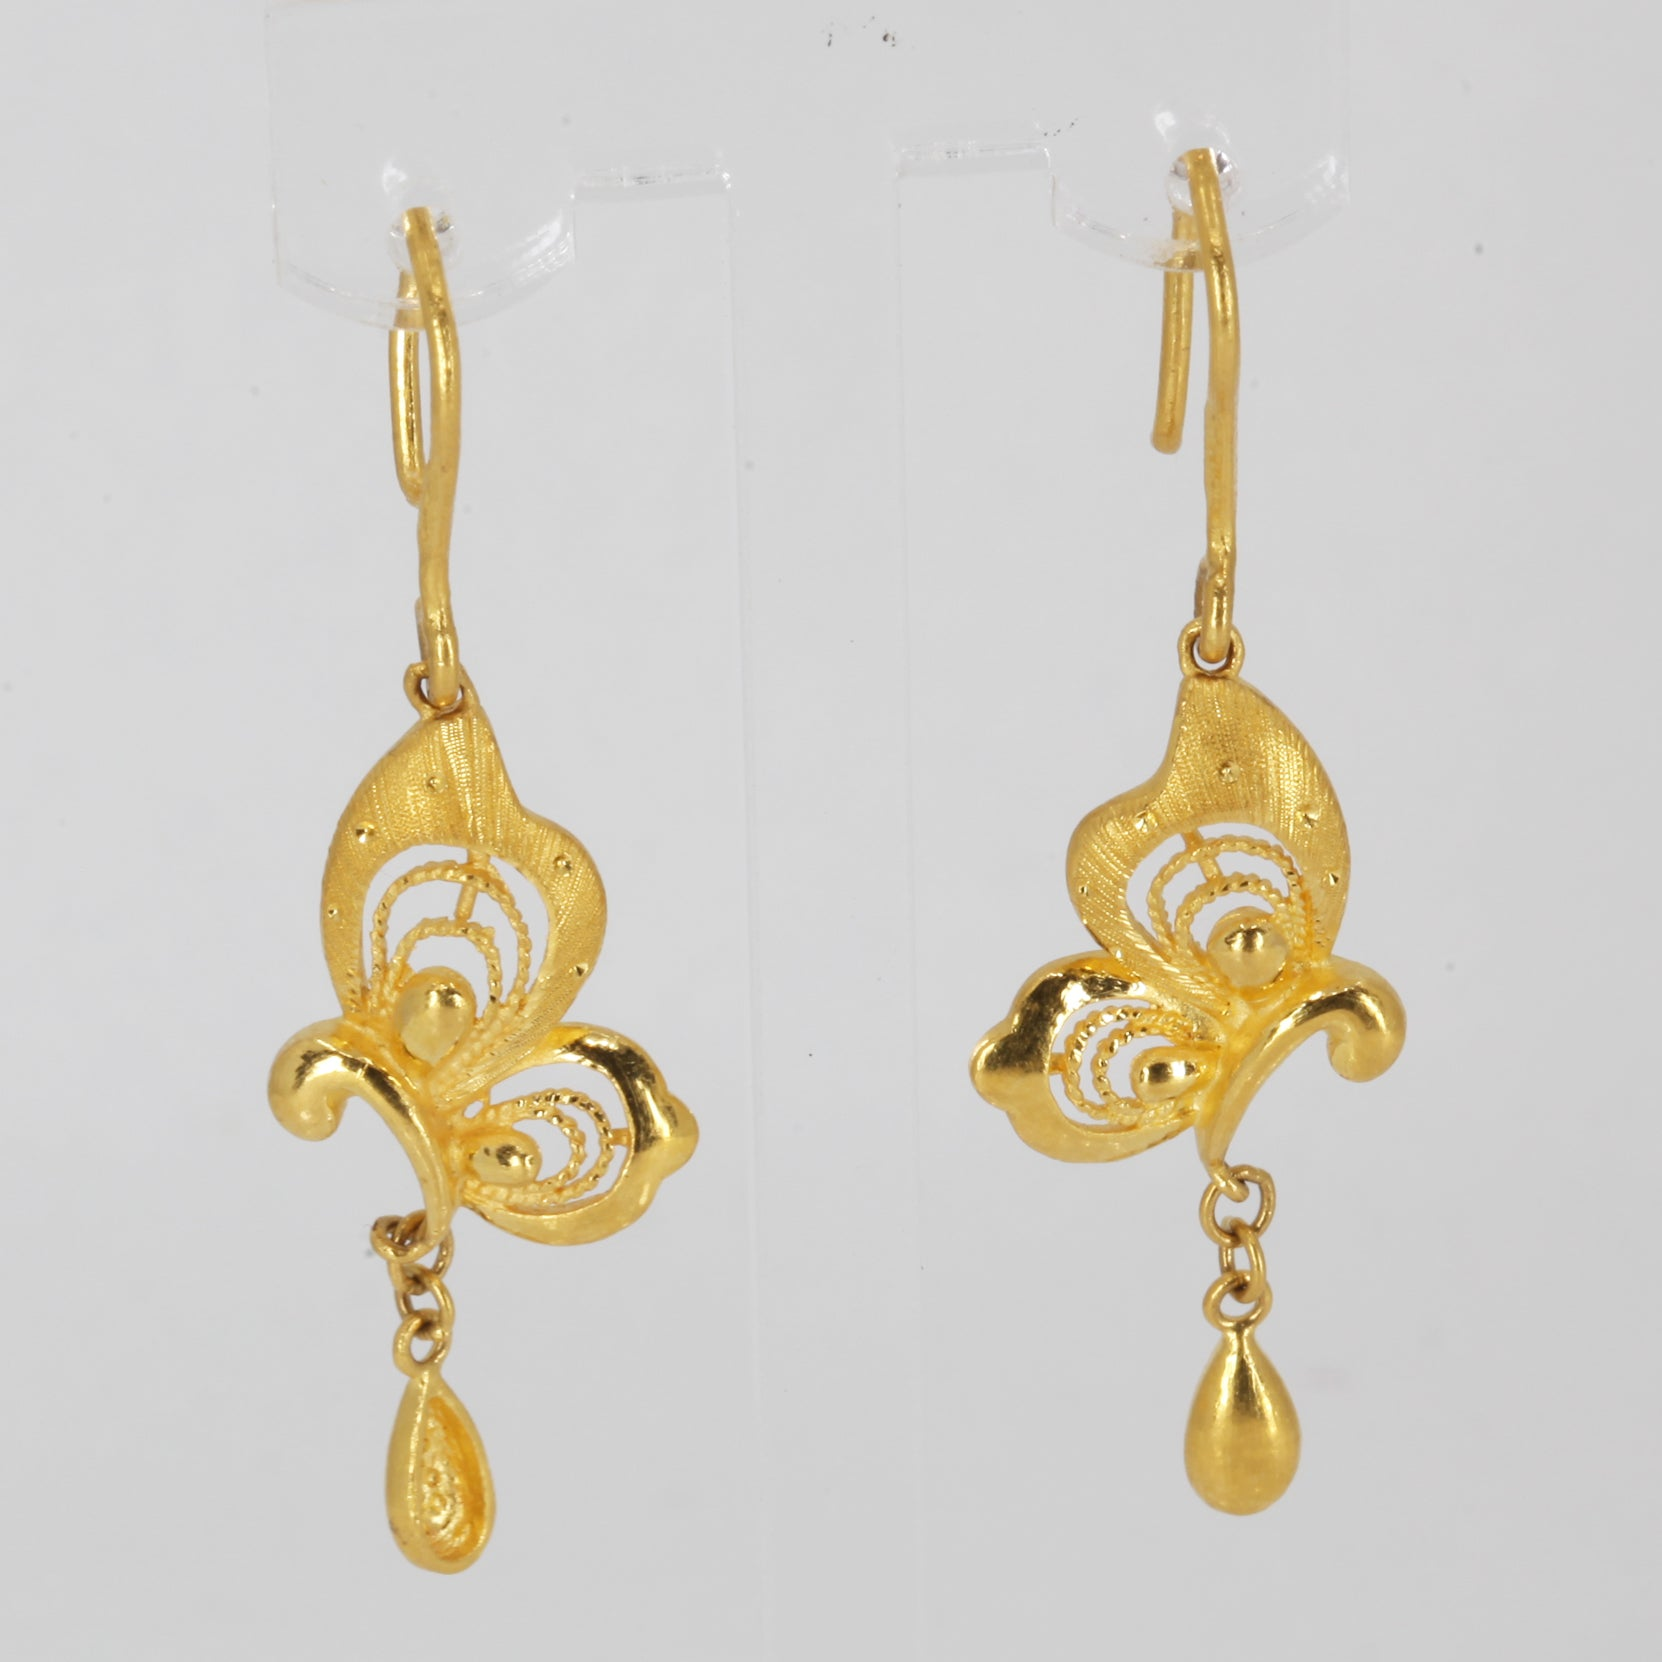 24K Solid Yellow Gold Butterfly Hanging Earrings 7.4 Grams